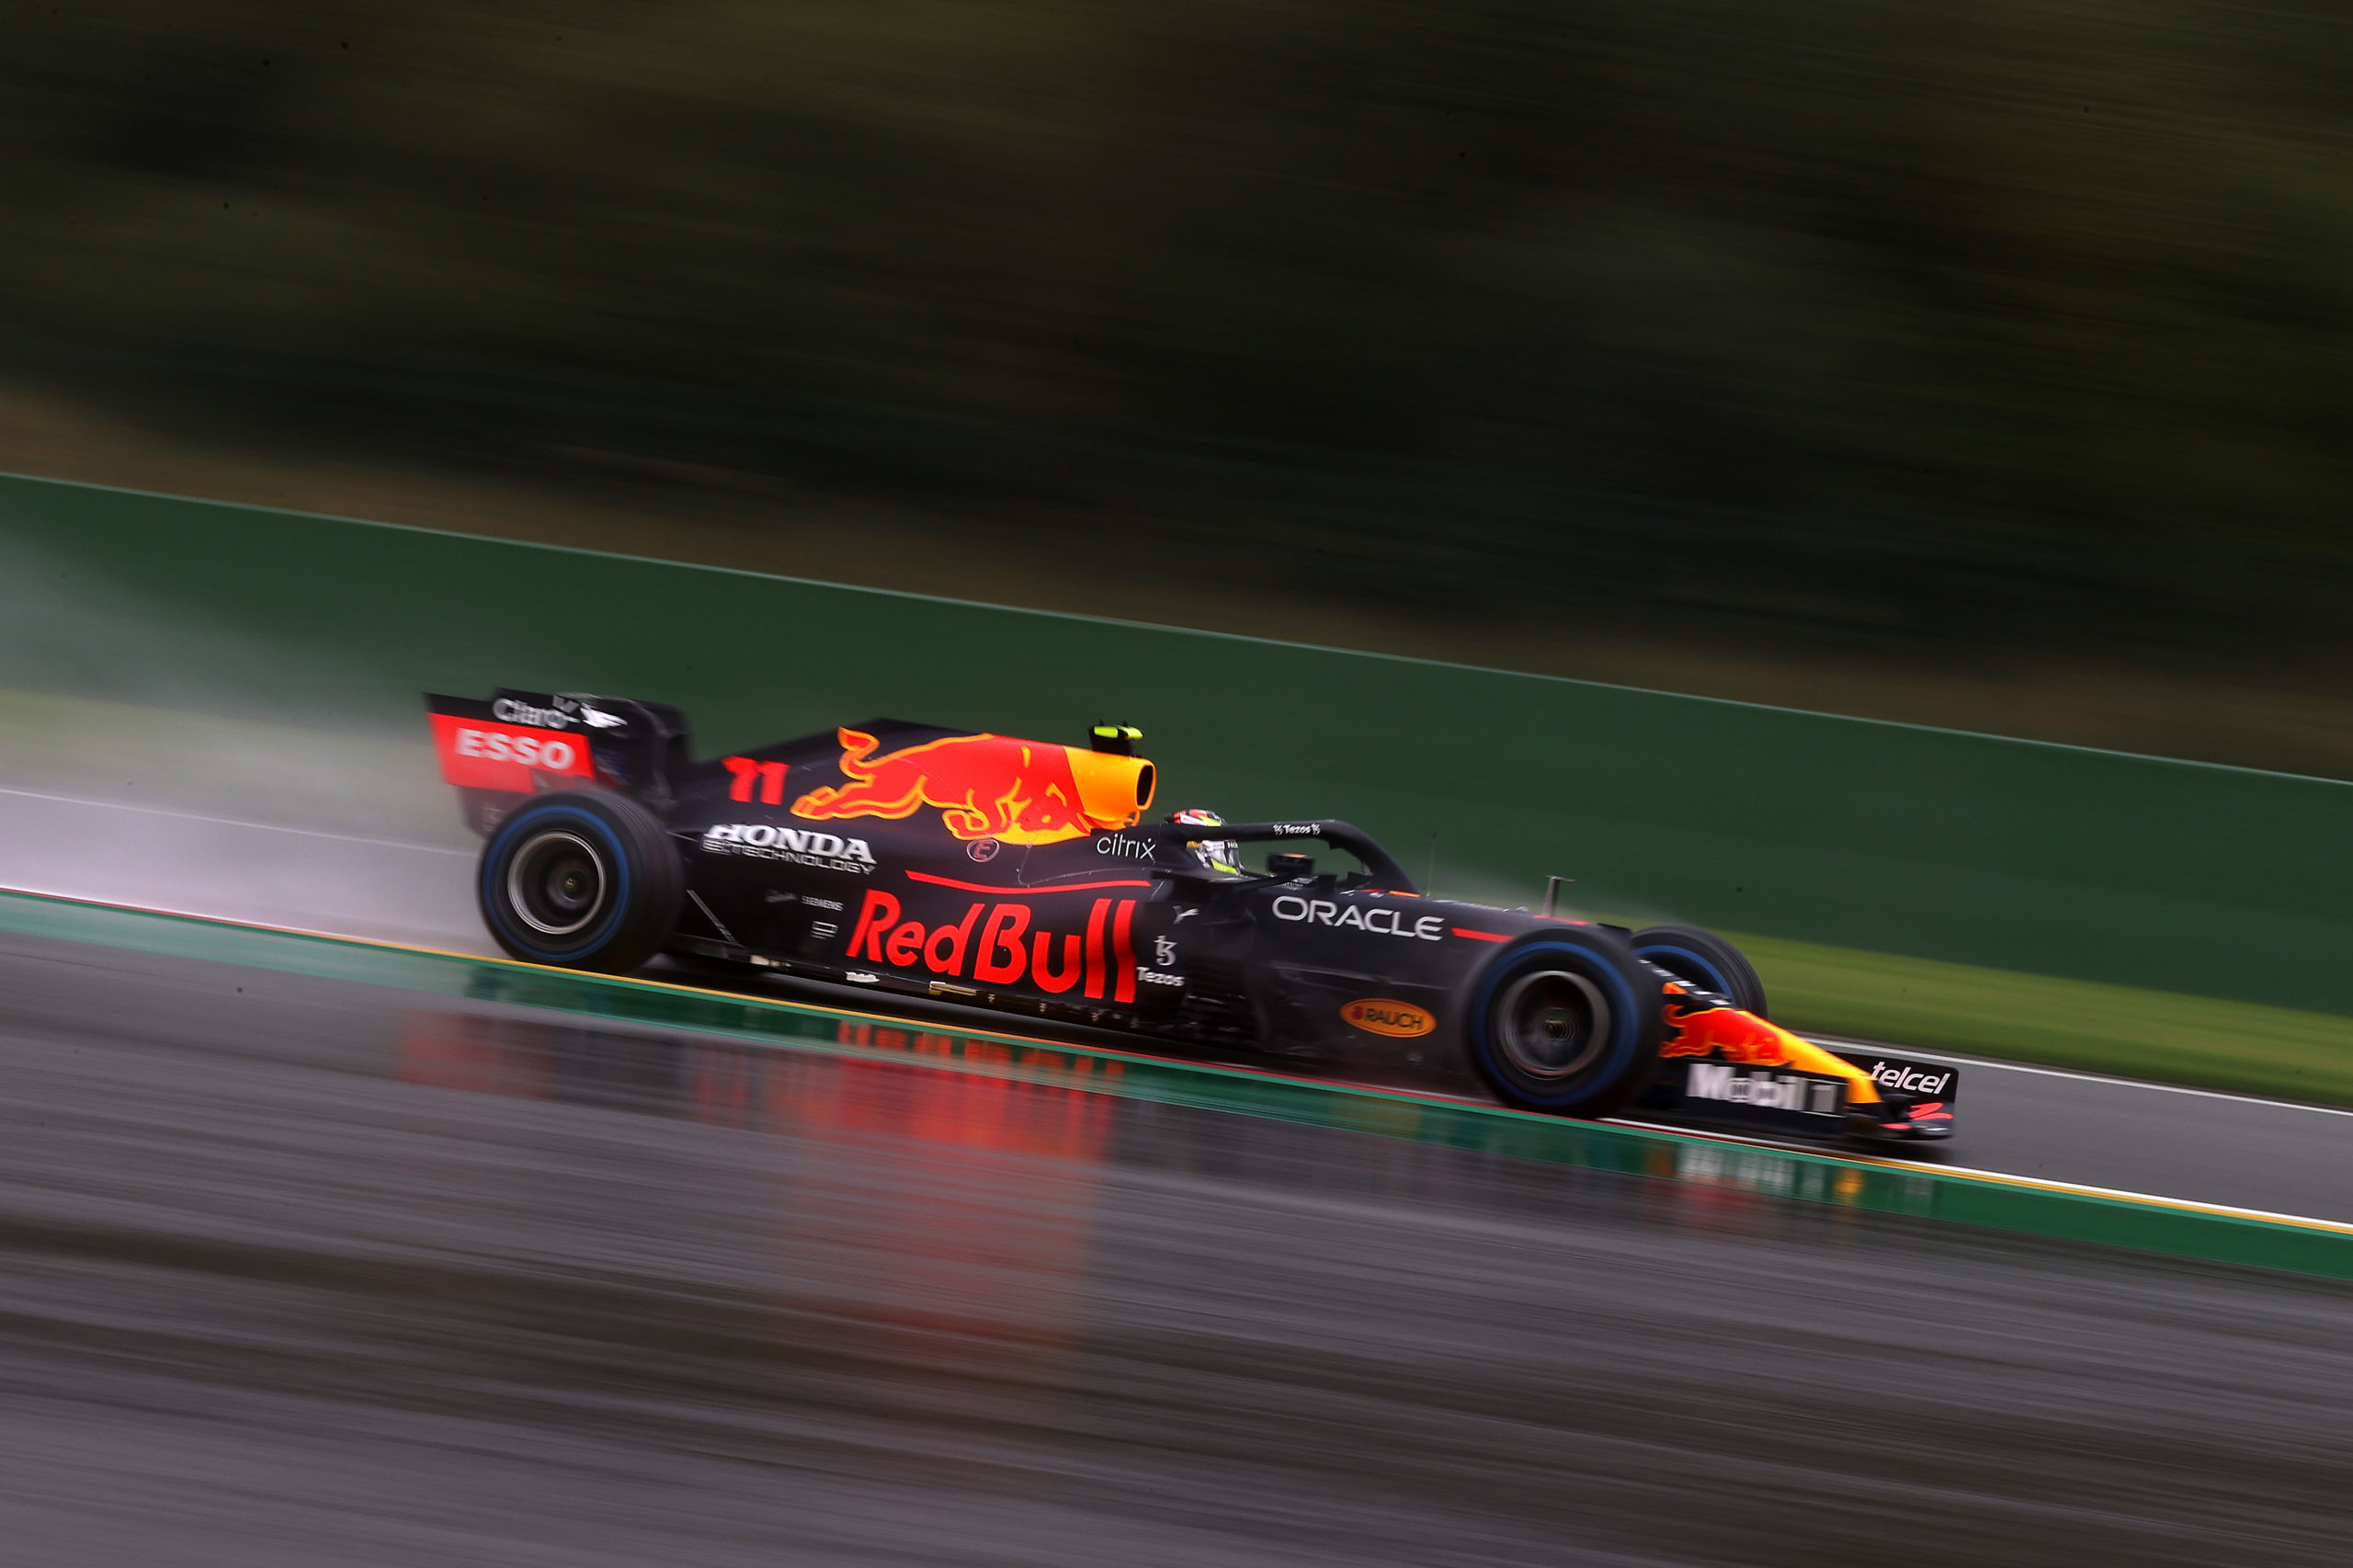 SPA, BELGIUM - AUGUST 28: Sergio Perez of Mexico driving the (11) Red Bull Racing RB16B Honda during qualifying ahead of the F1 Grand Prix of Belgium at Circuit de Spa-Francorchamps on August 28, 2021 in Spa, Belgium. (Photo by Lars Baron/Getty Images) // Getty Images / Red Bull Content Pool  // SI202108280372 // Usage for editorial use only //